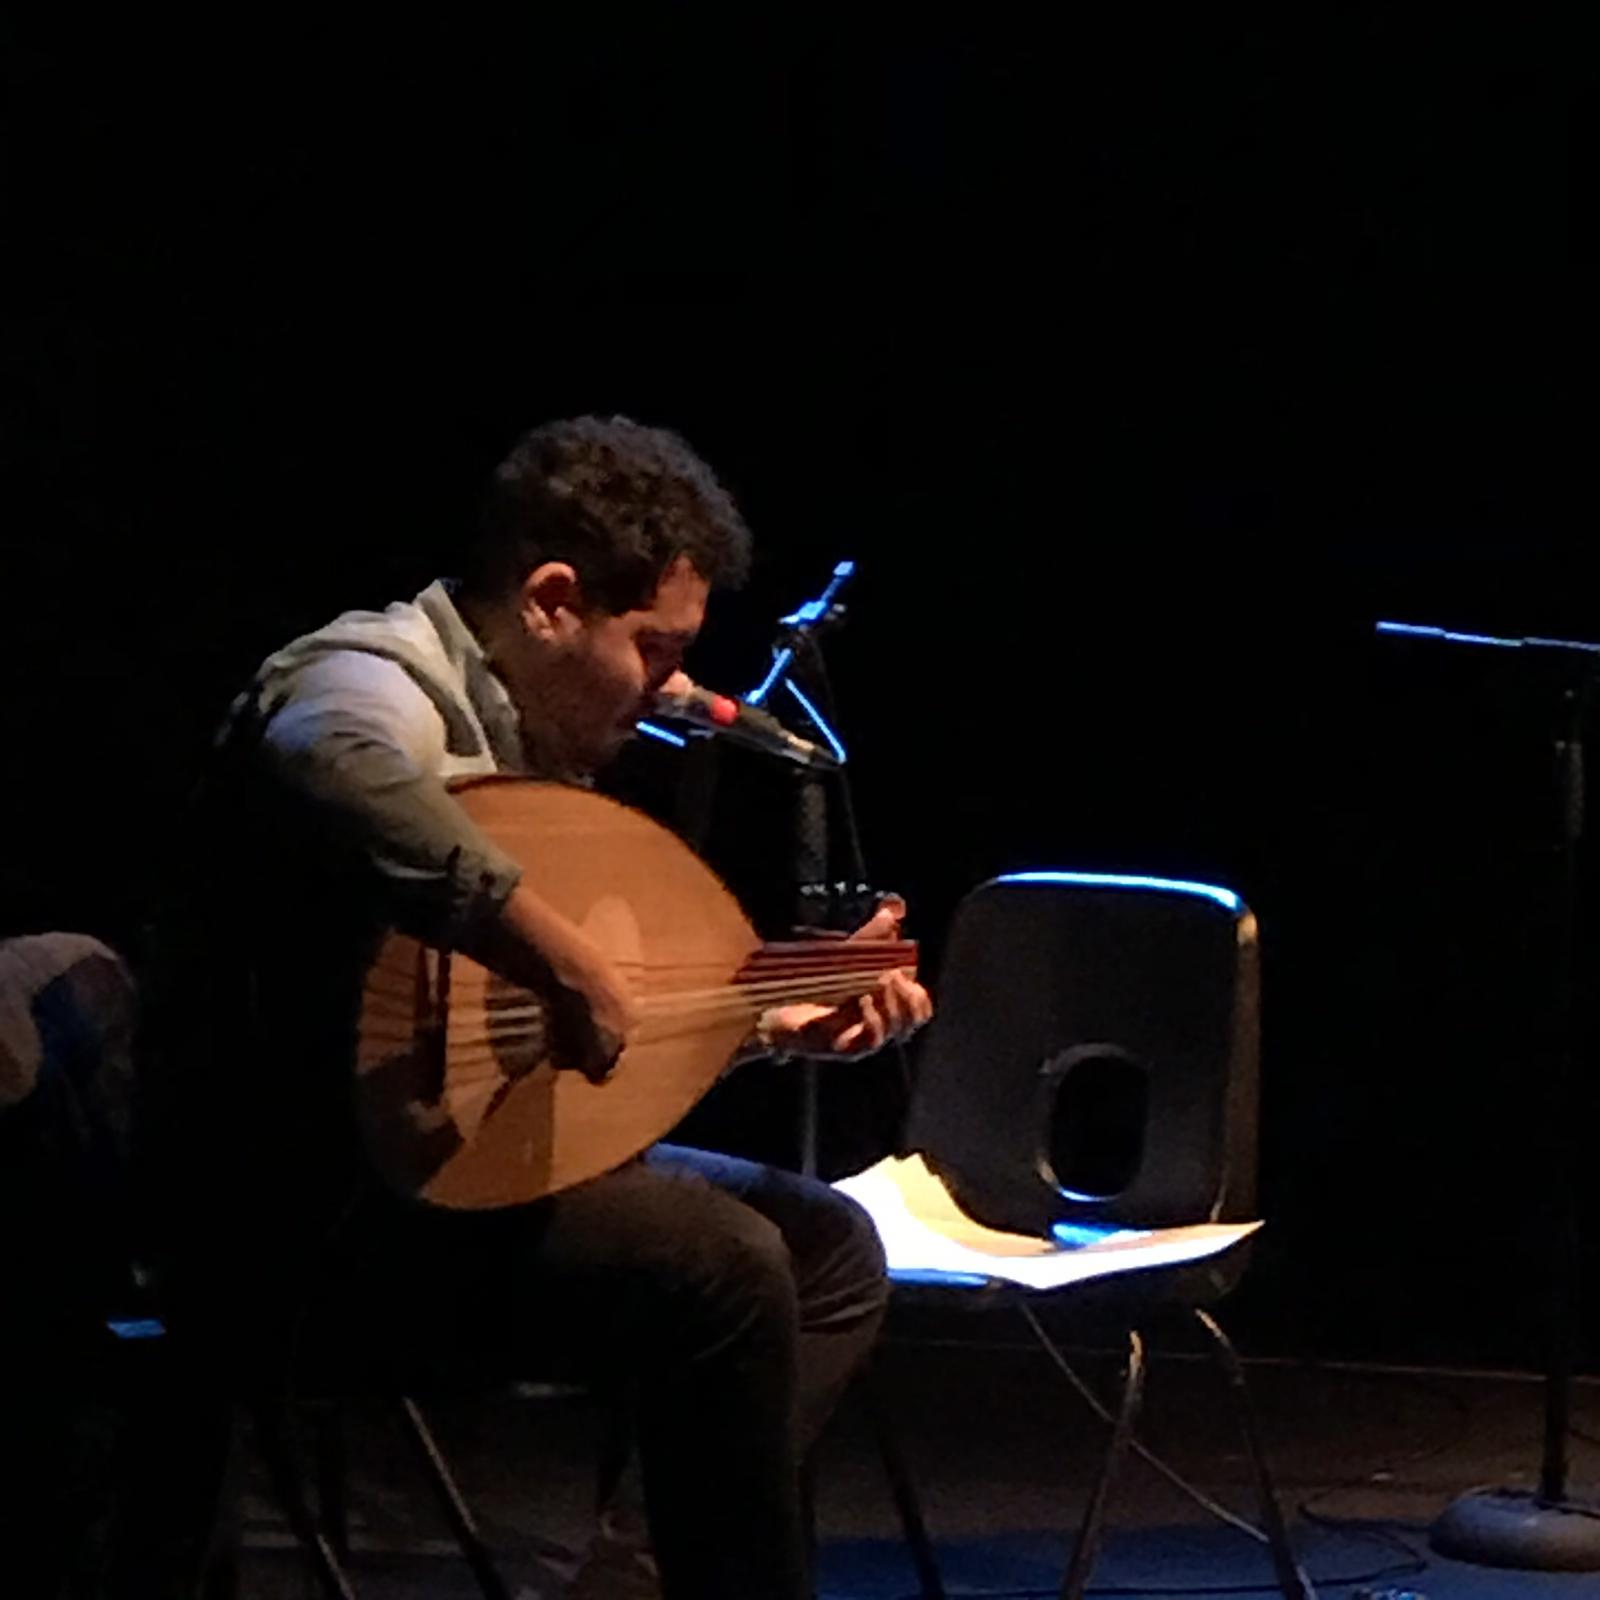 Kareem Samara plays the oud on stage